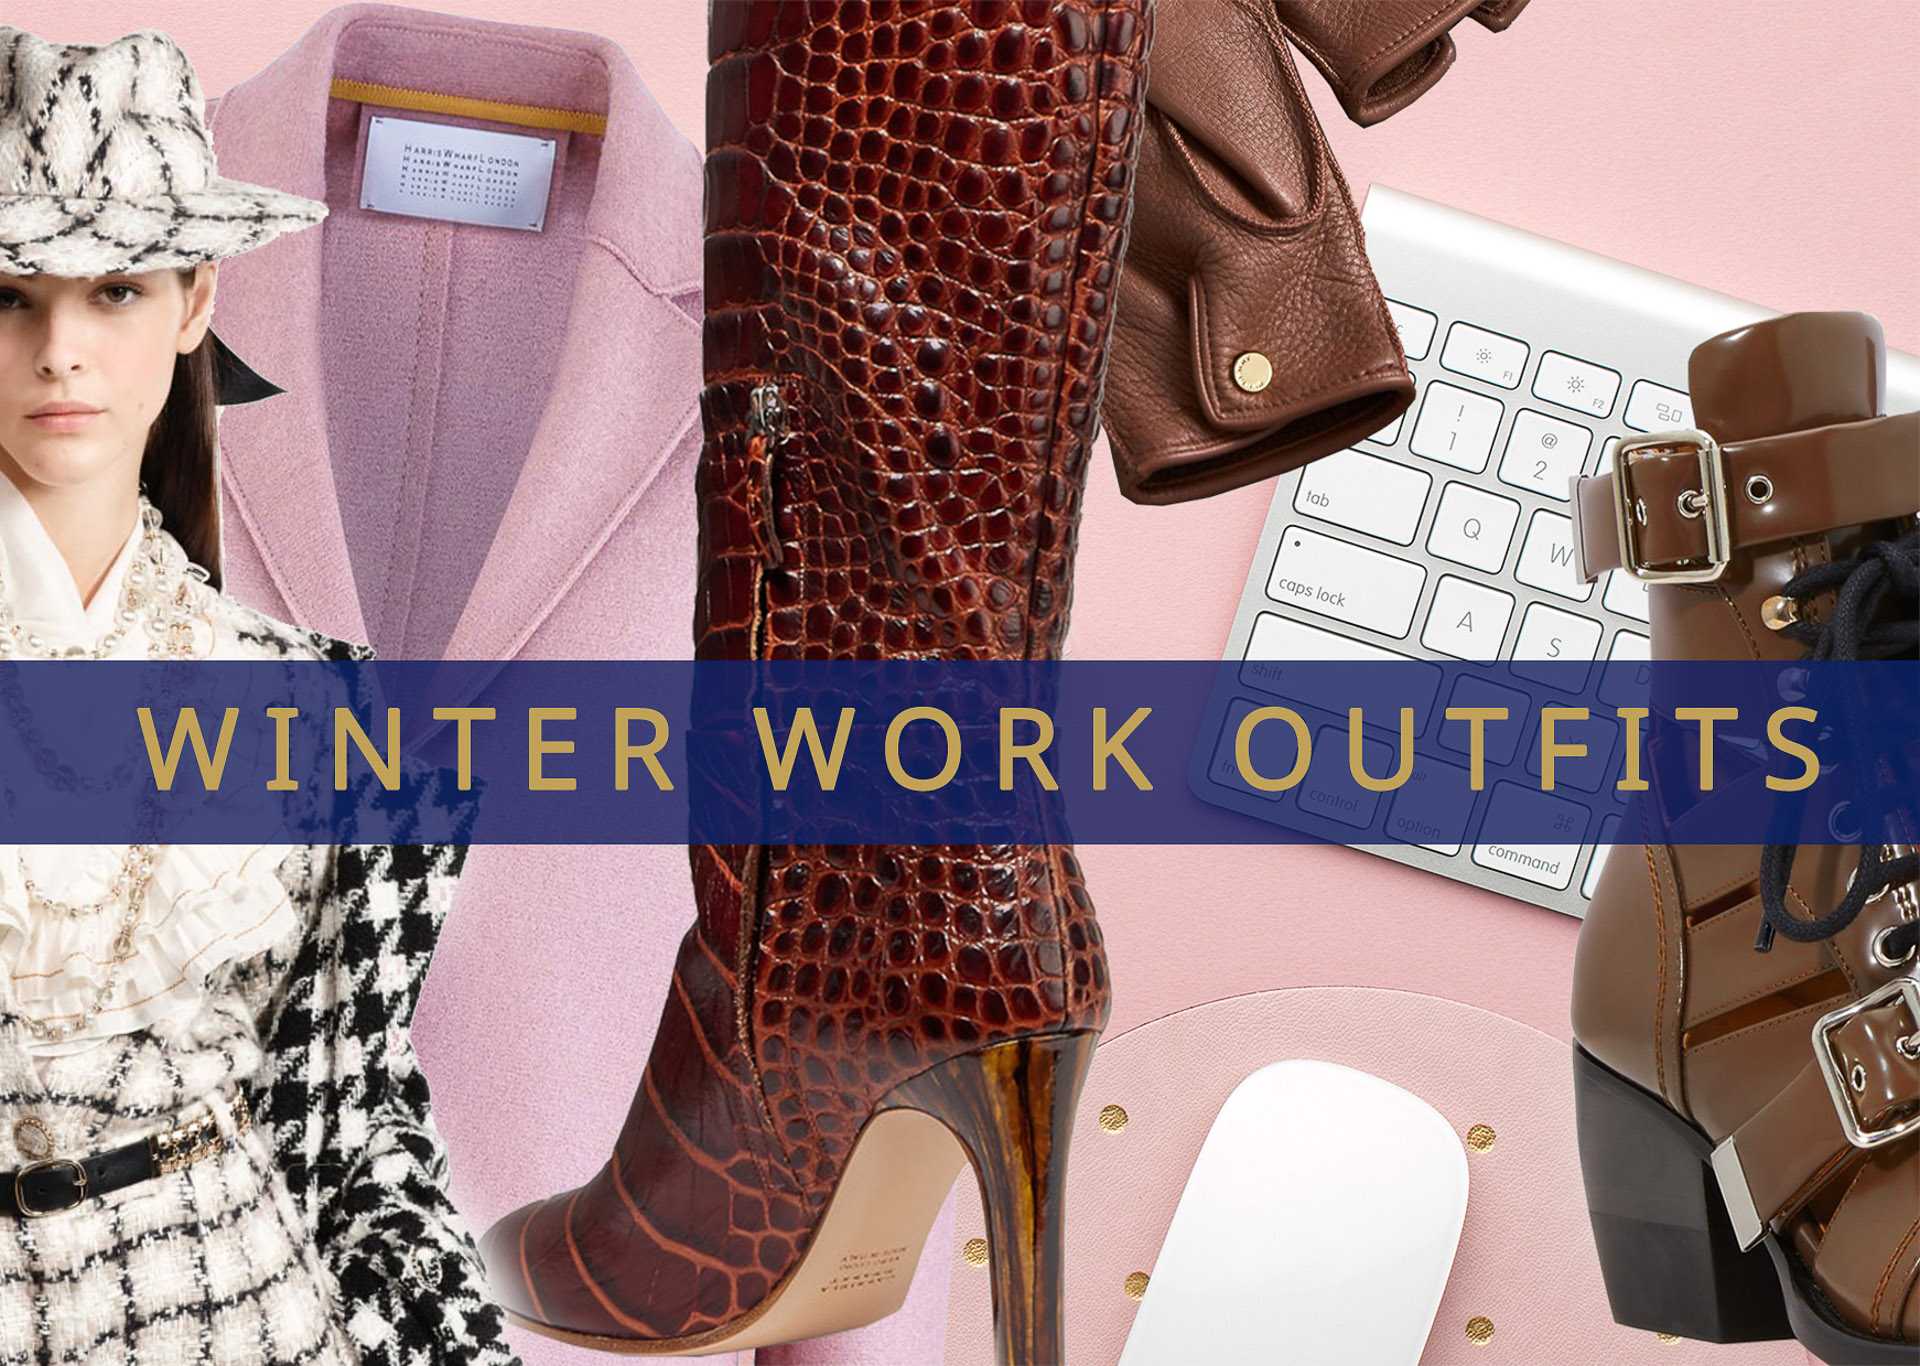 Brunette from Wall Street winter work outfits